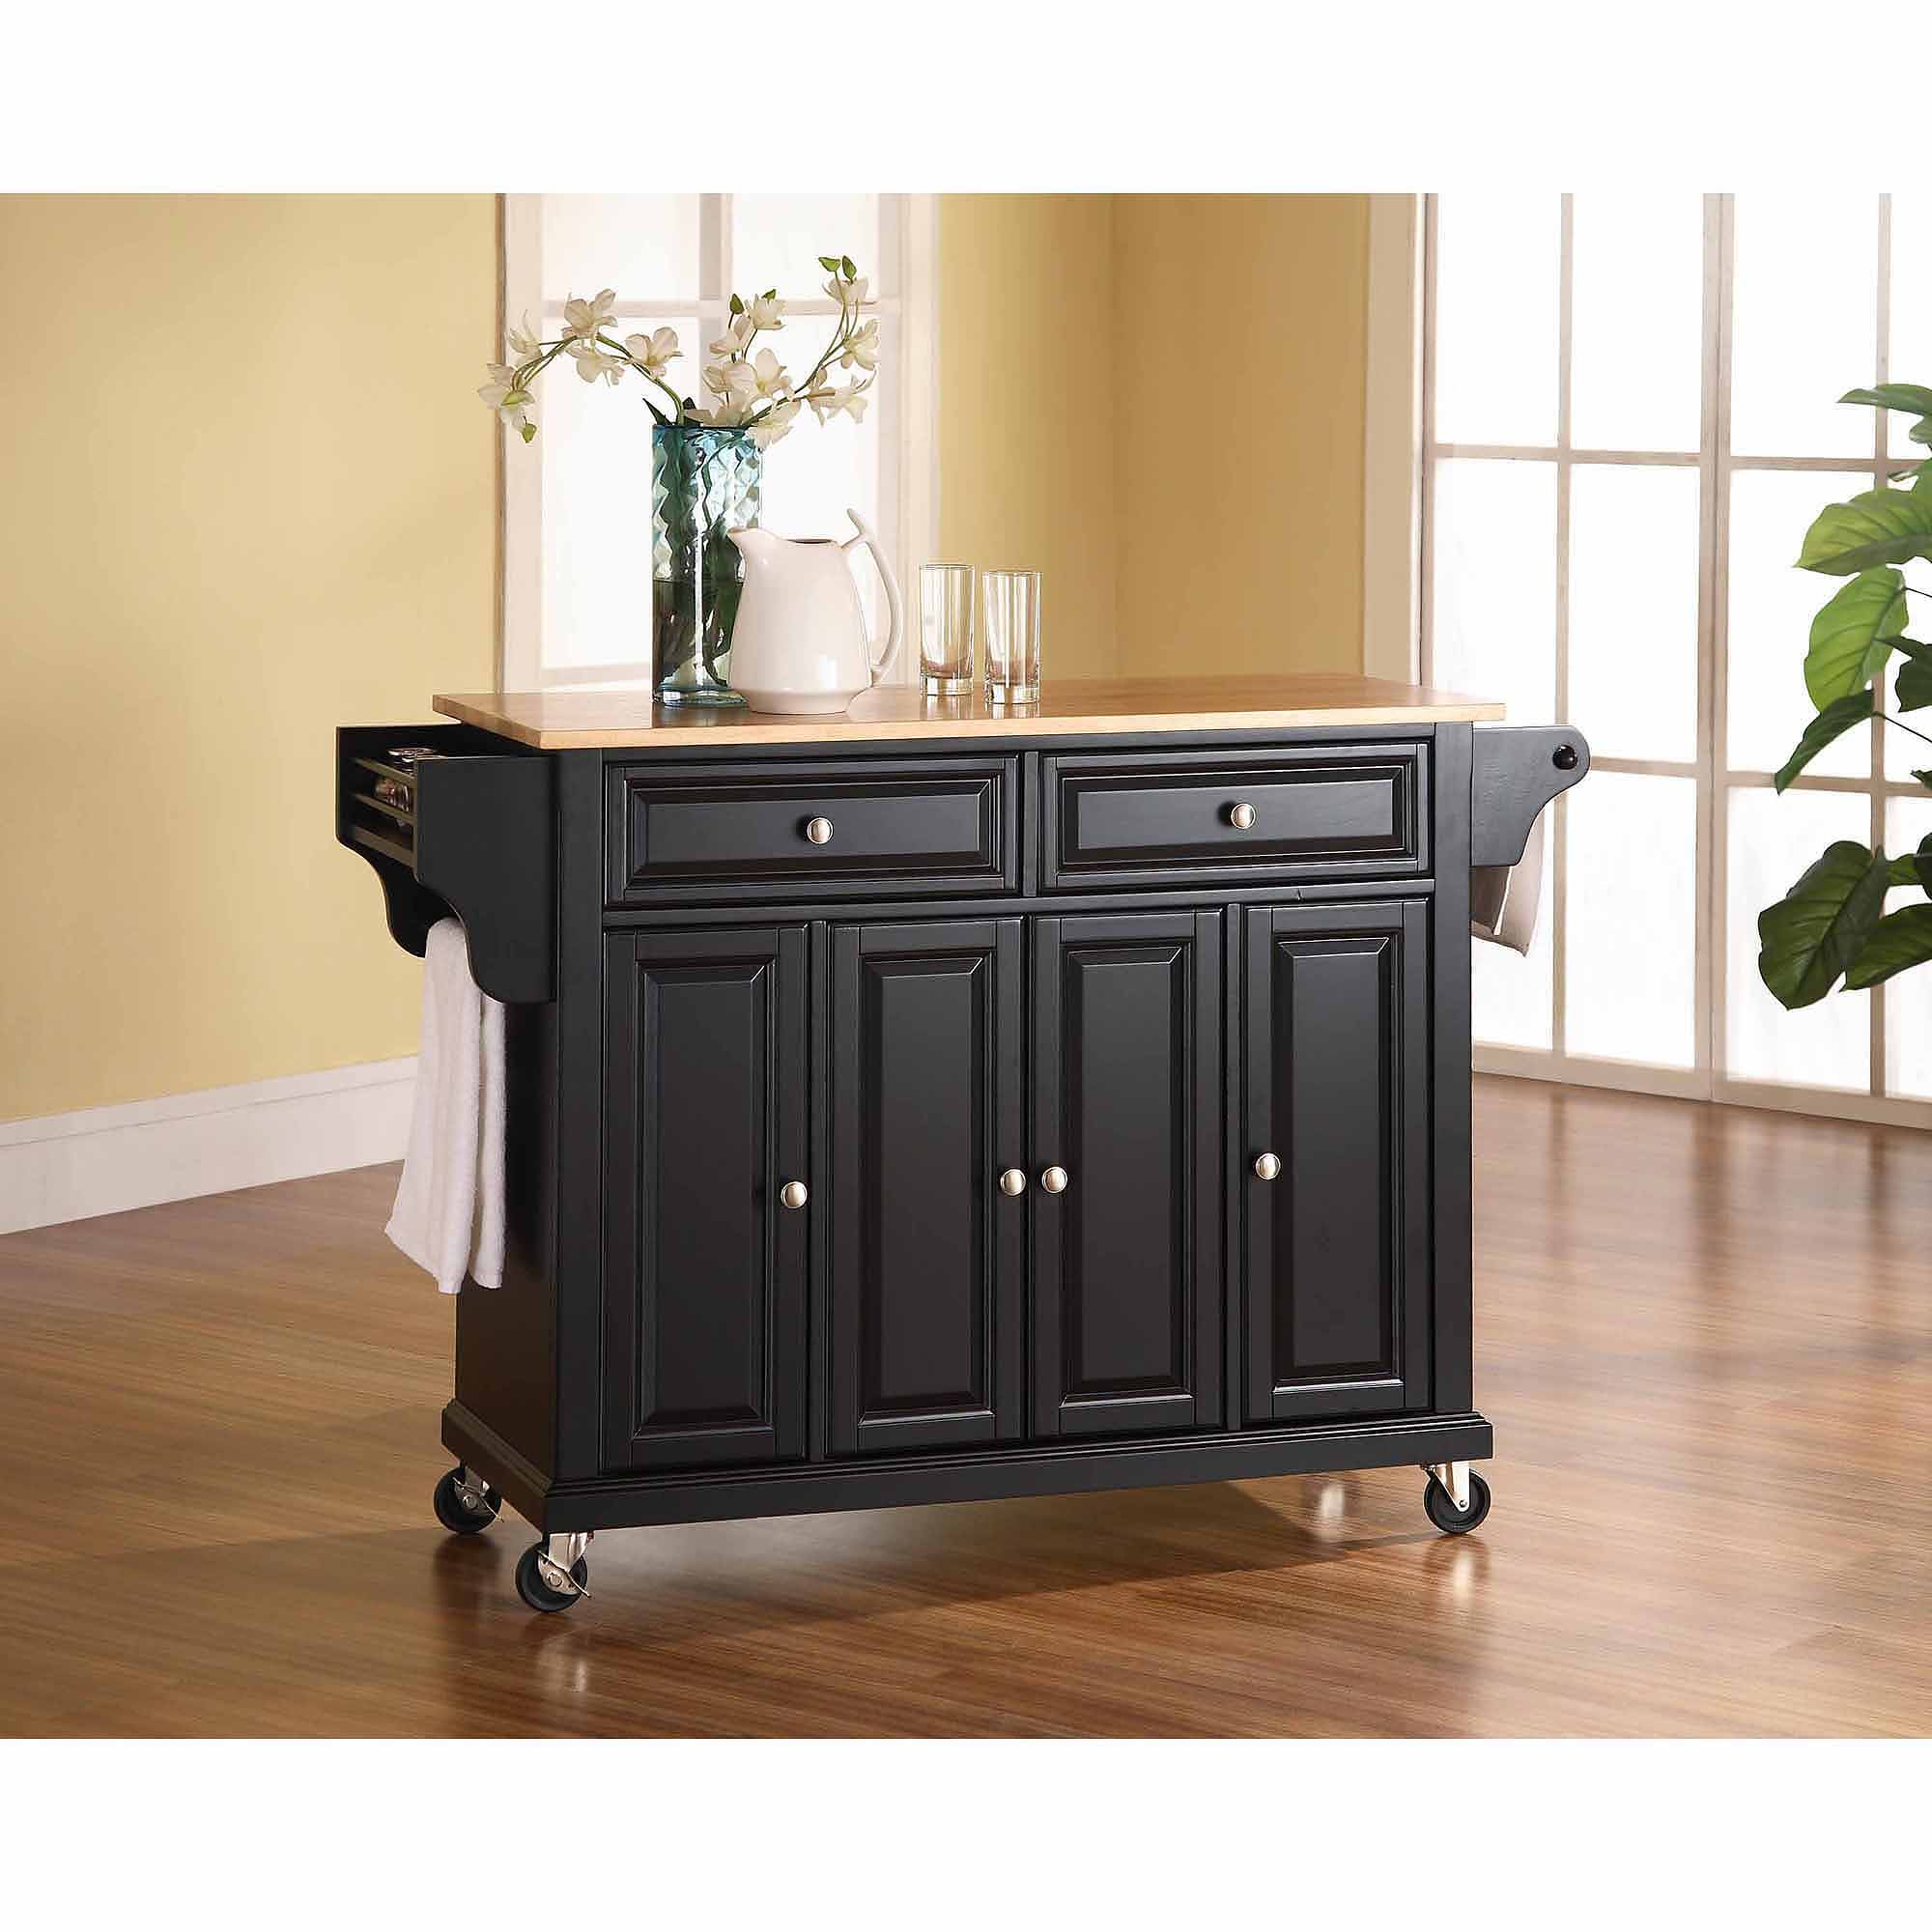 Crosley Furniture Natural Wood Top Kitchen Cart Walmartcom